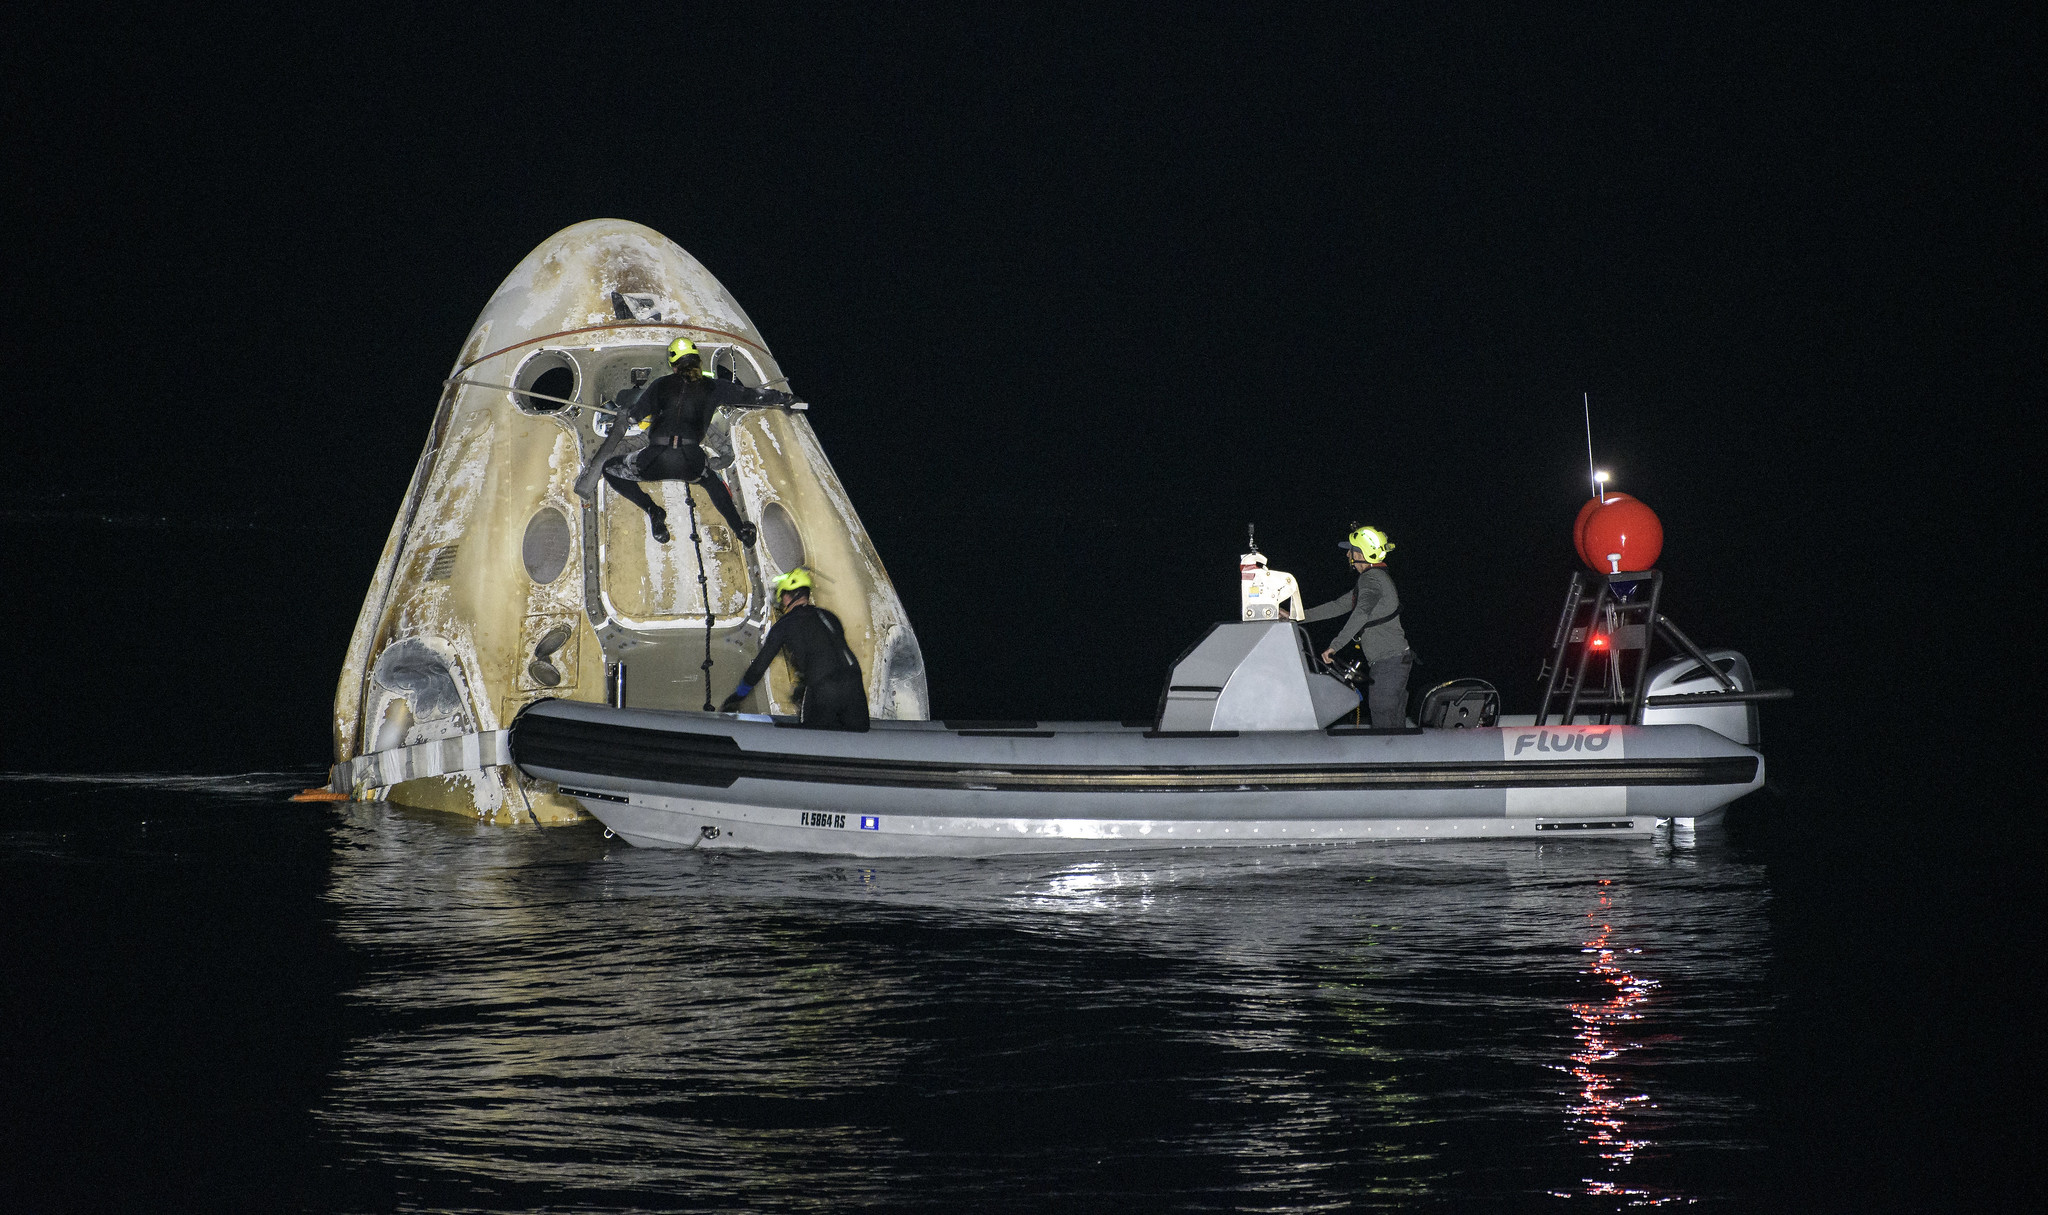 NASA Crew-1 Dragon Astronauts Depart ISS for Safe Splashdown Making 1st US Nighttime Landing Since Apollo 8